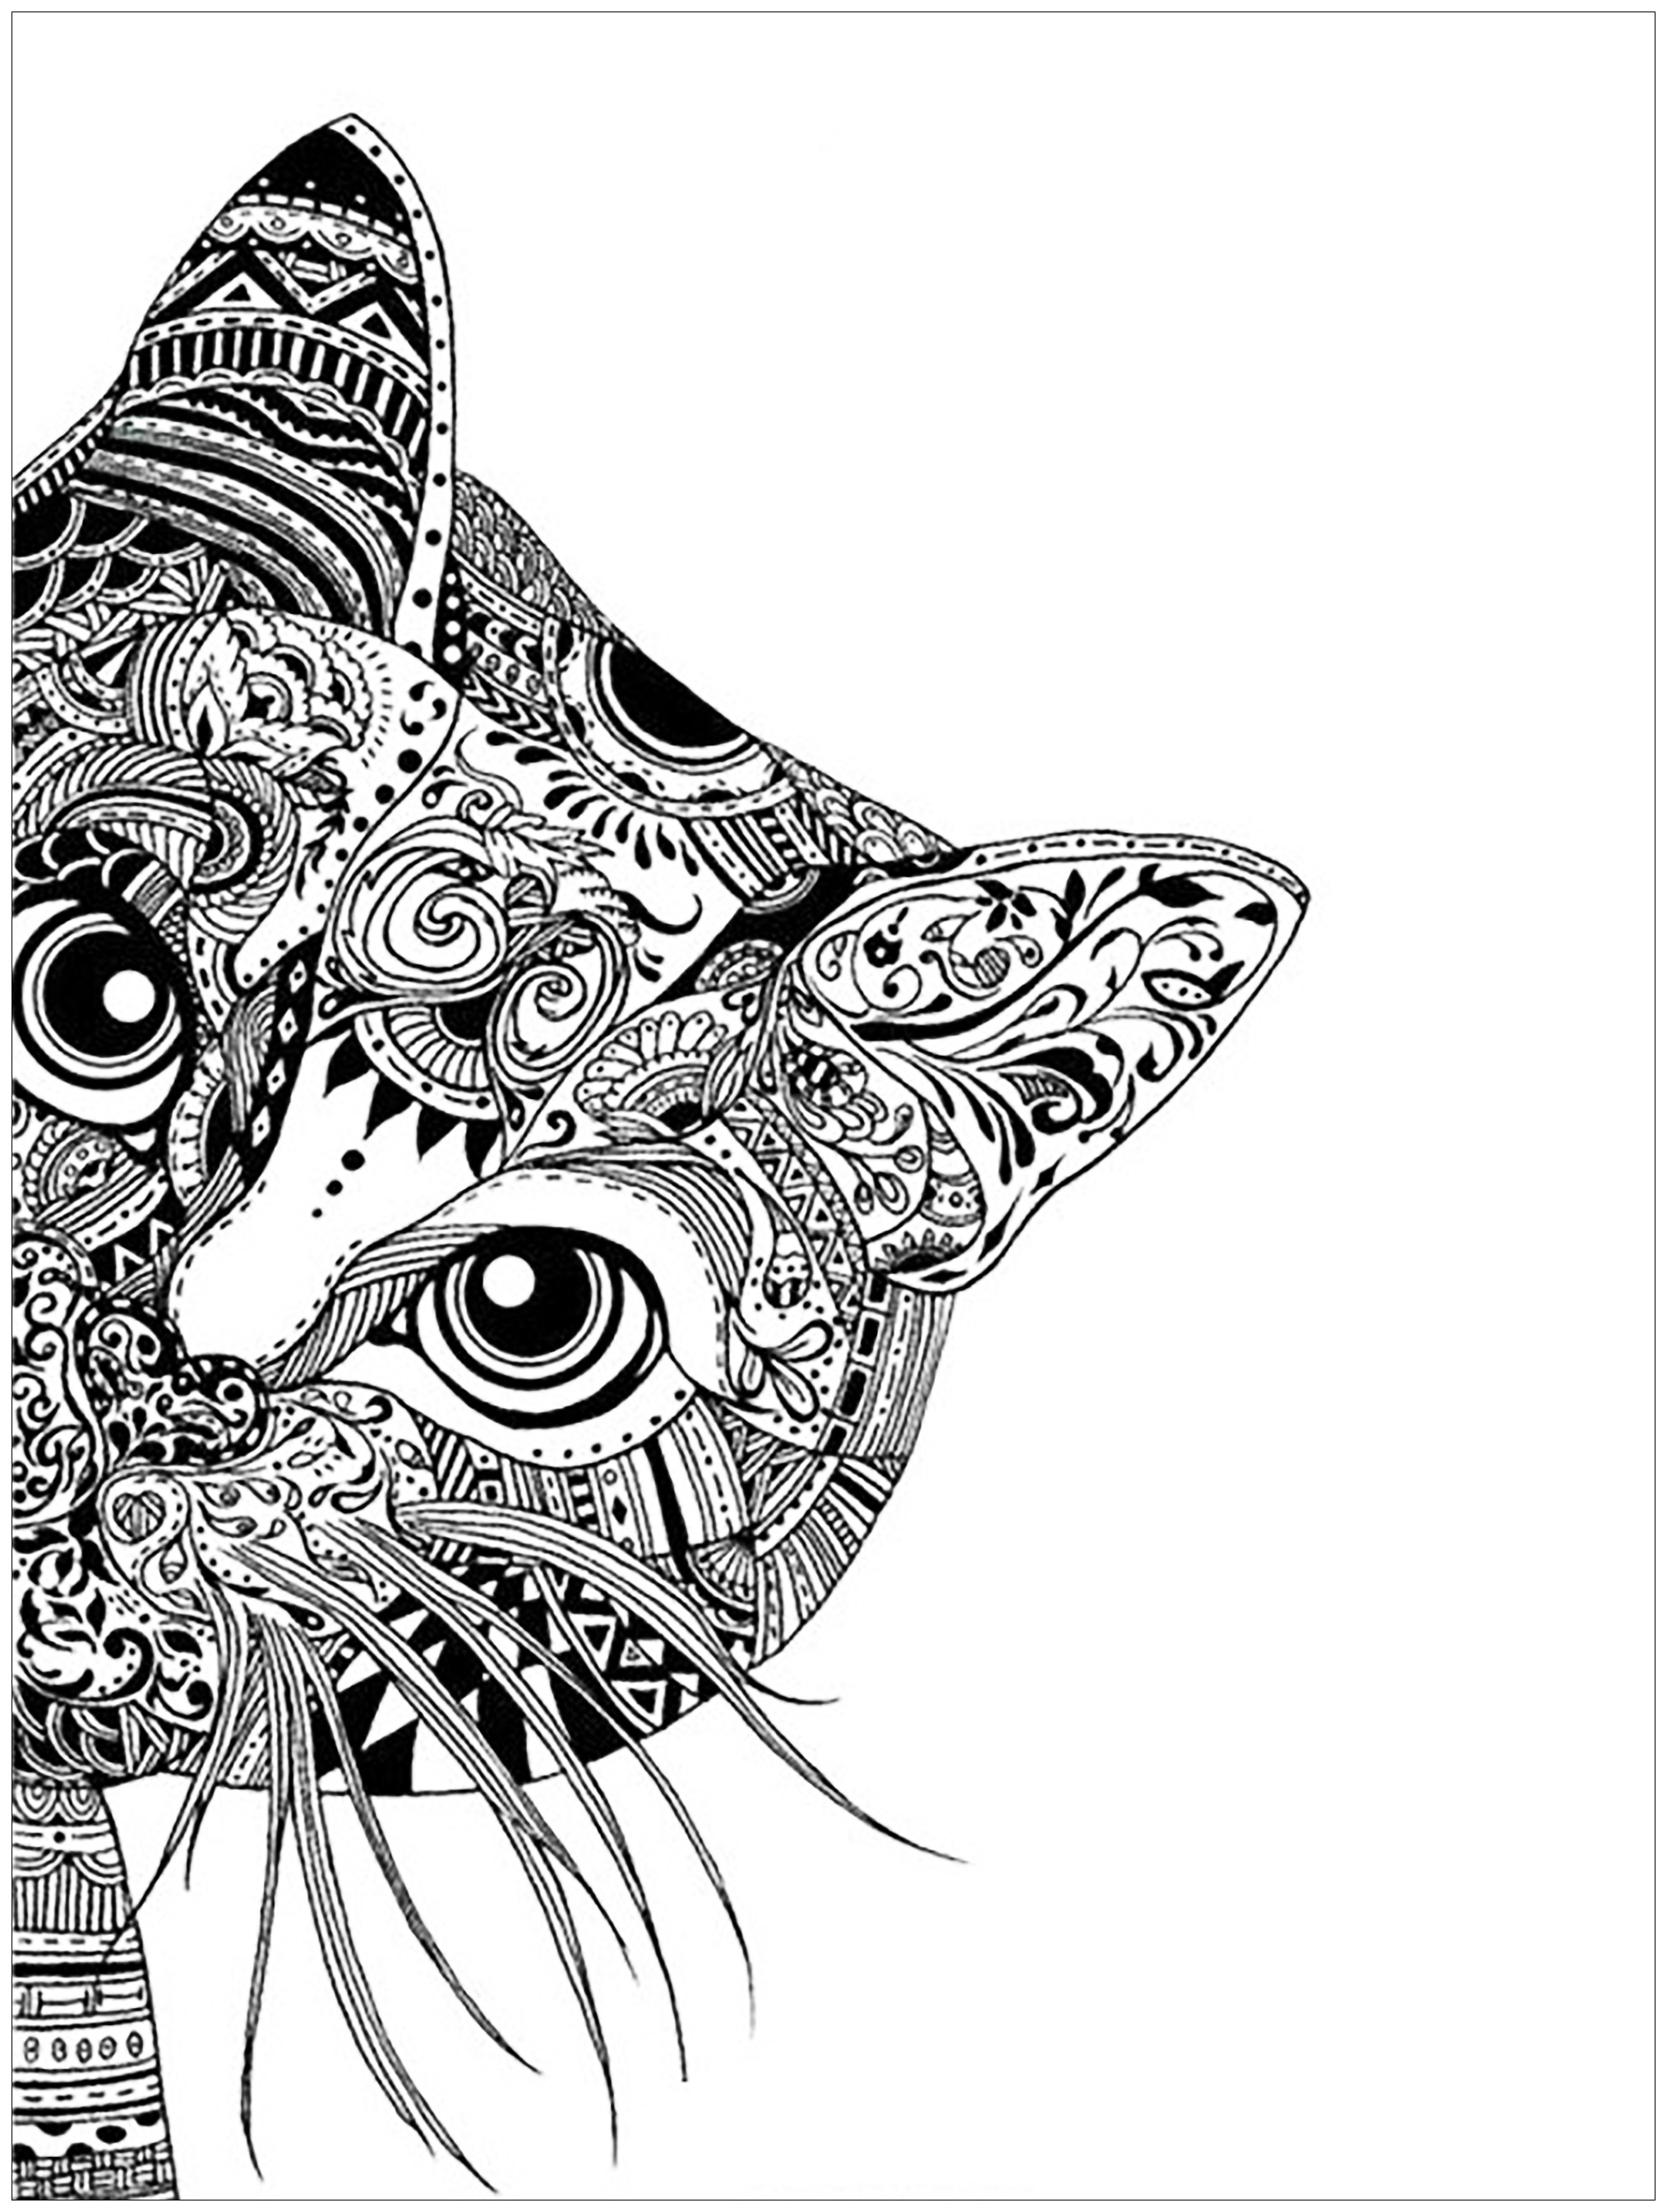 coloring pages adults cat head 1 free to print